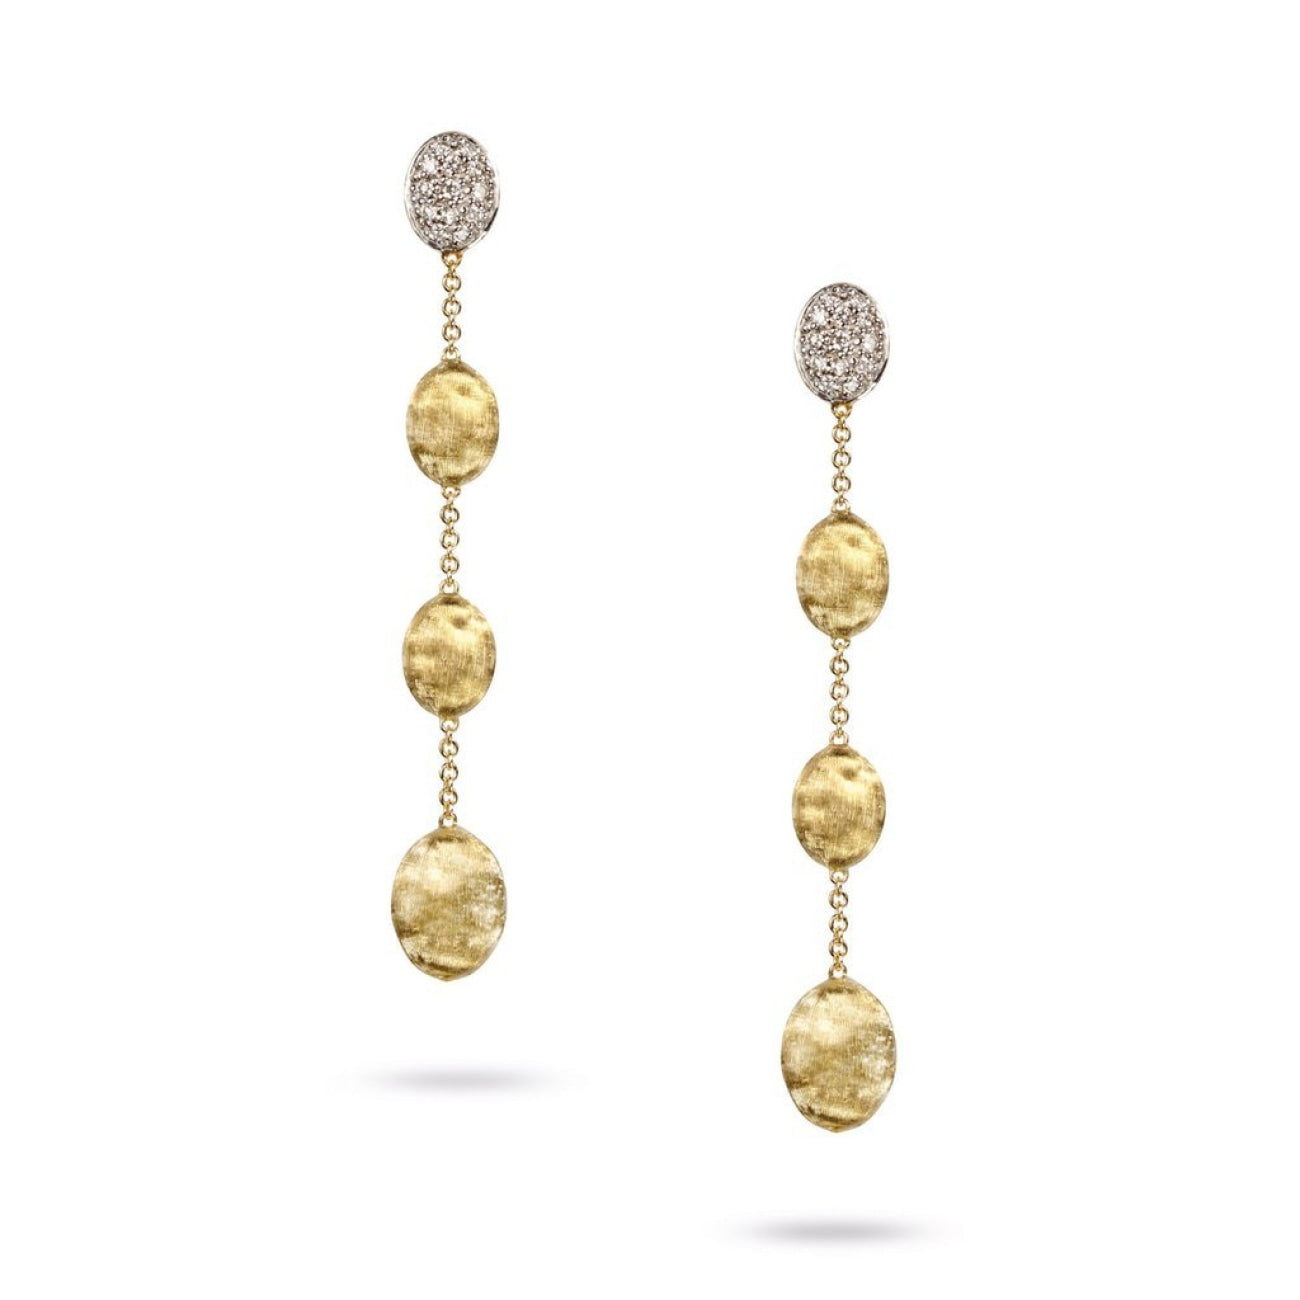 Marco Bicego Jewelry - 18K Yellow Gold & Diamond Pave Four Drop Earrings | Manfredi Jewels